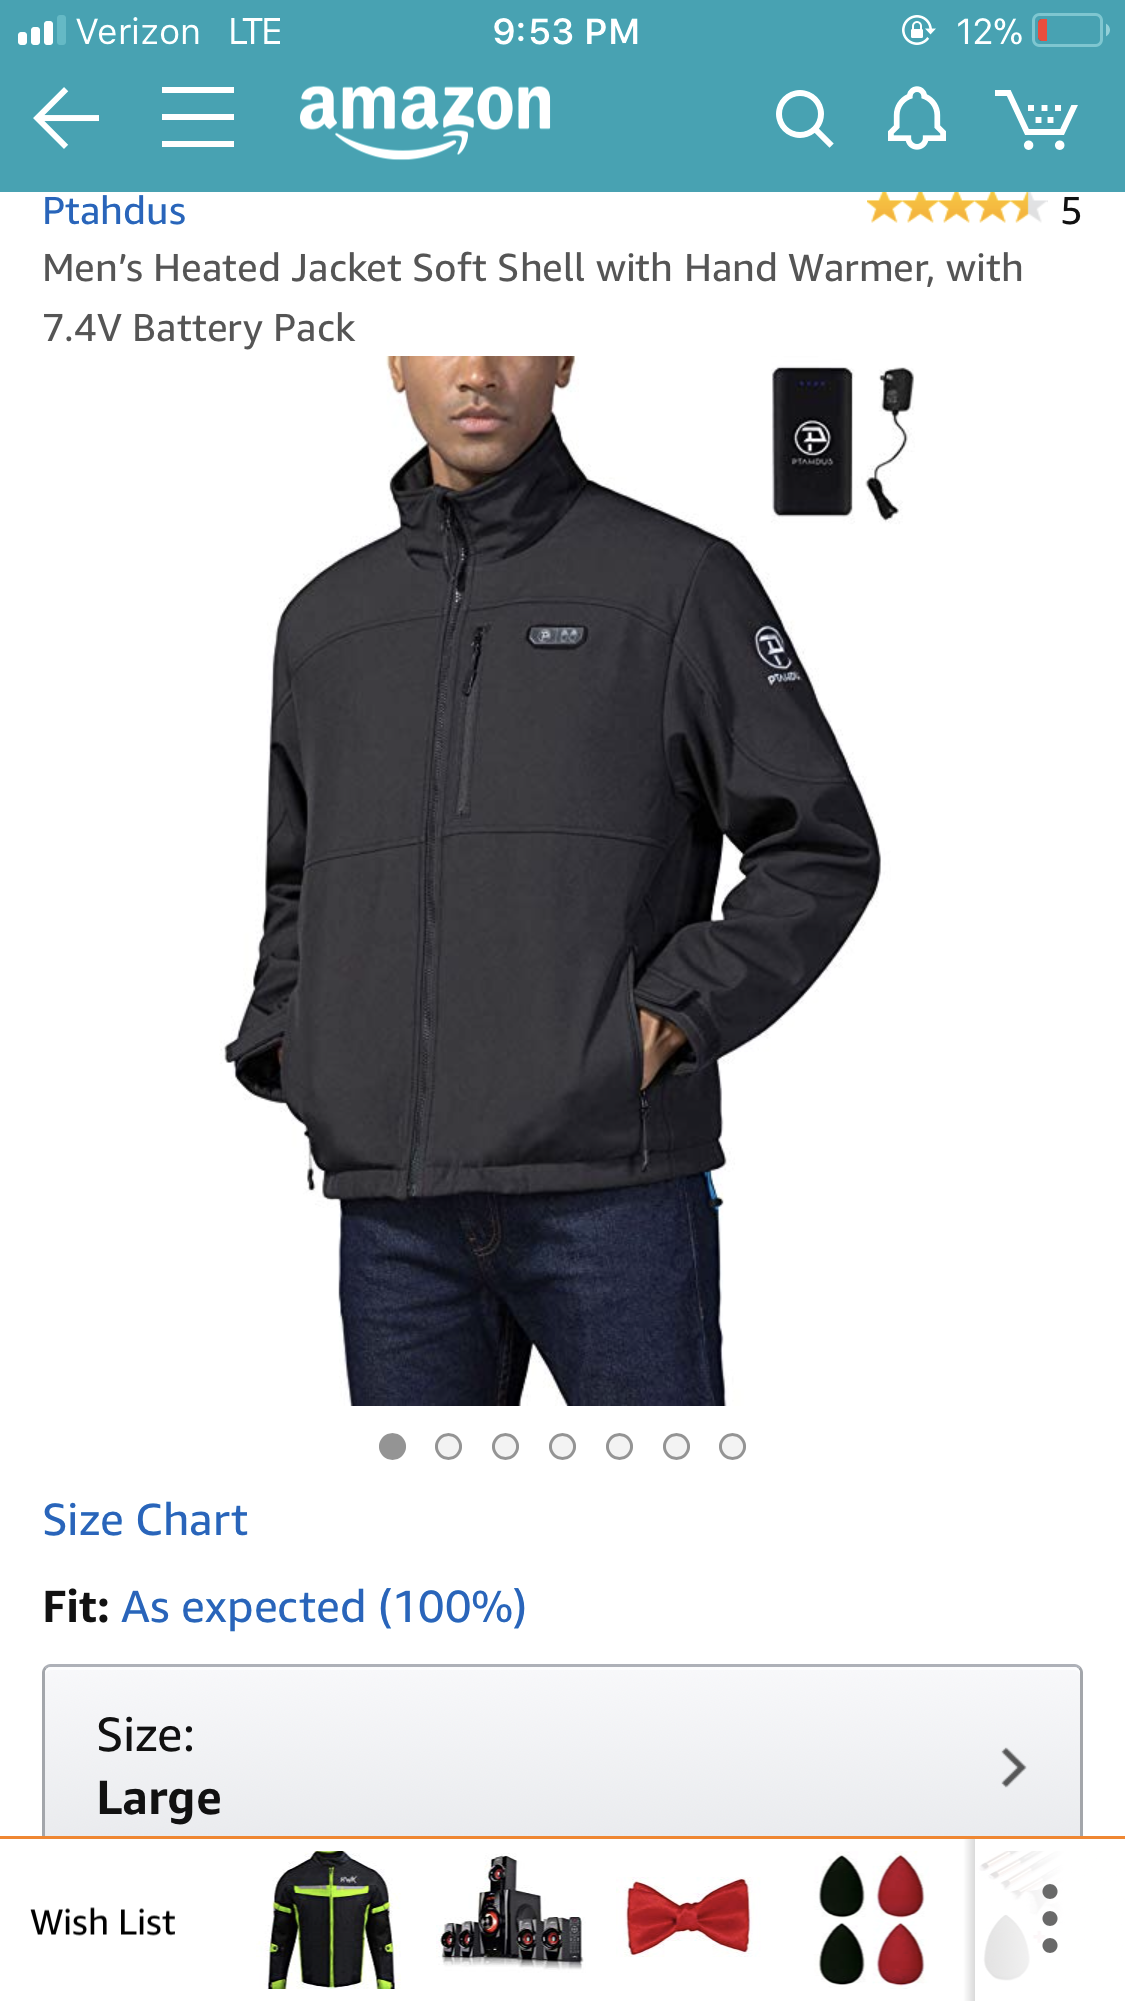 Pin By Alec Lindquist On Christmas List Heated Jacket Jackets Hand Warmers